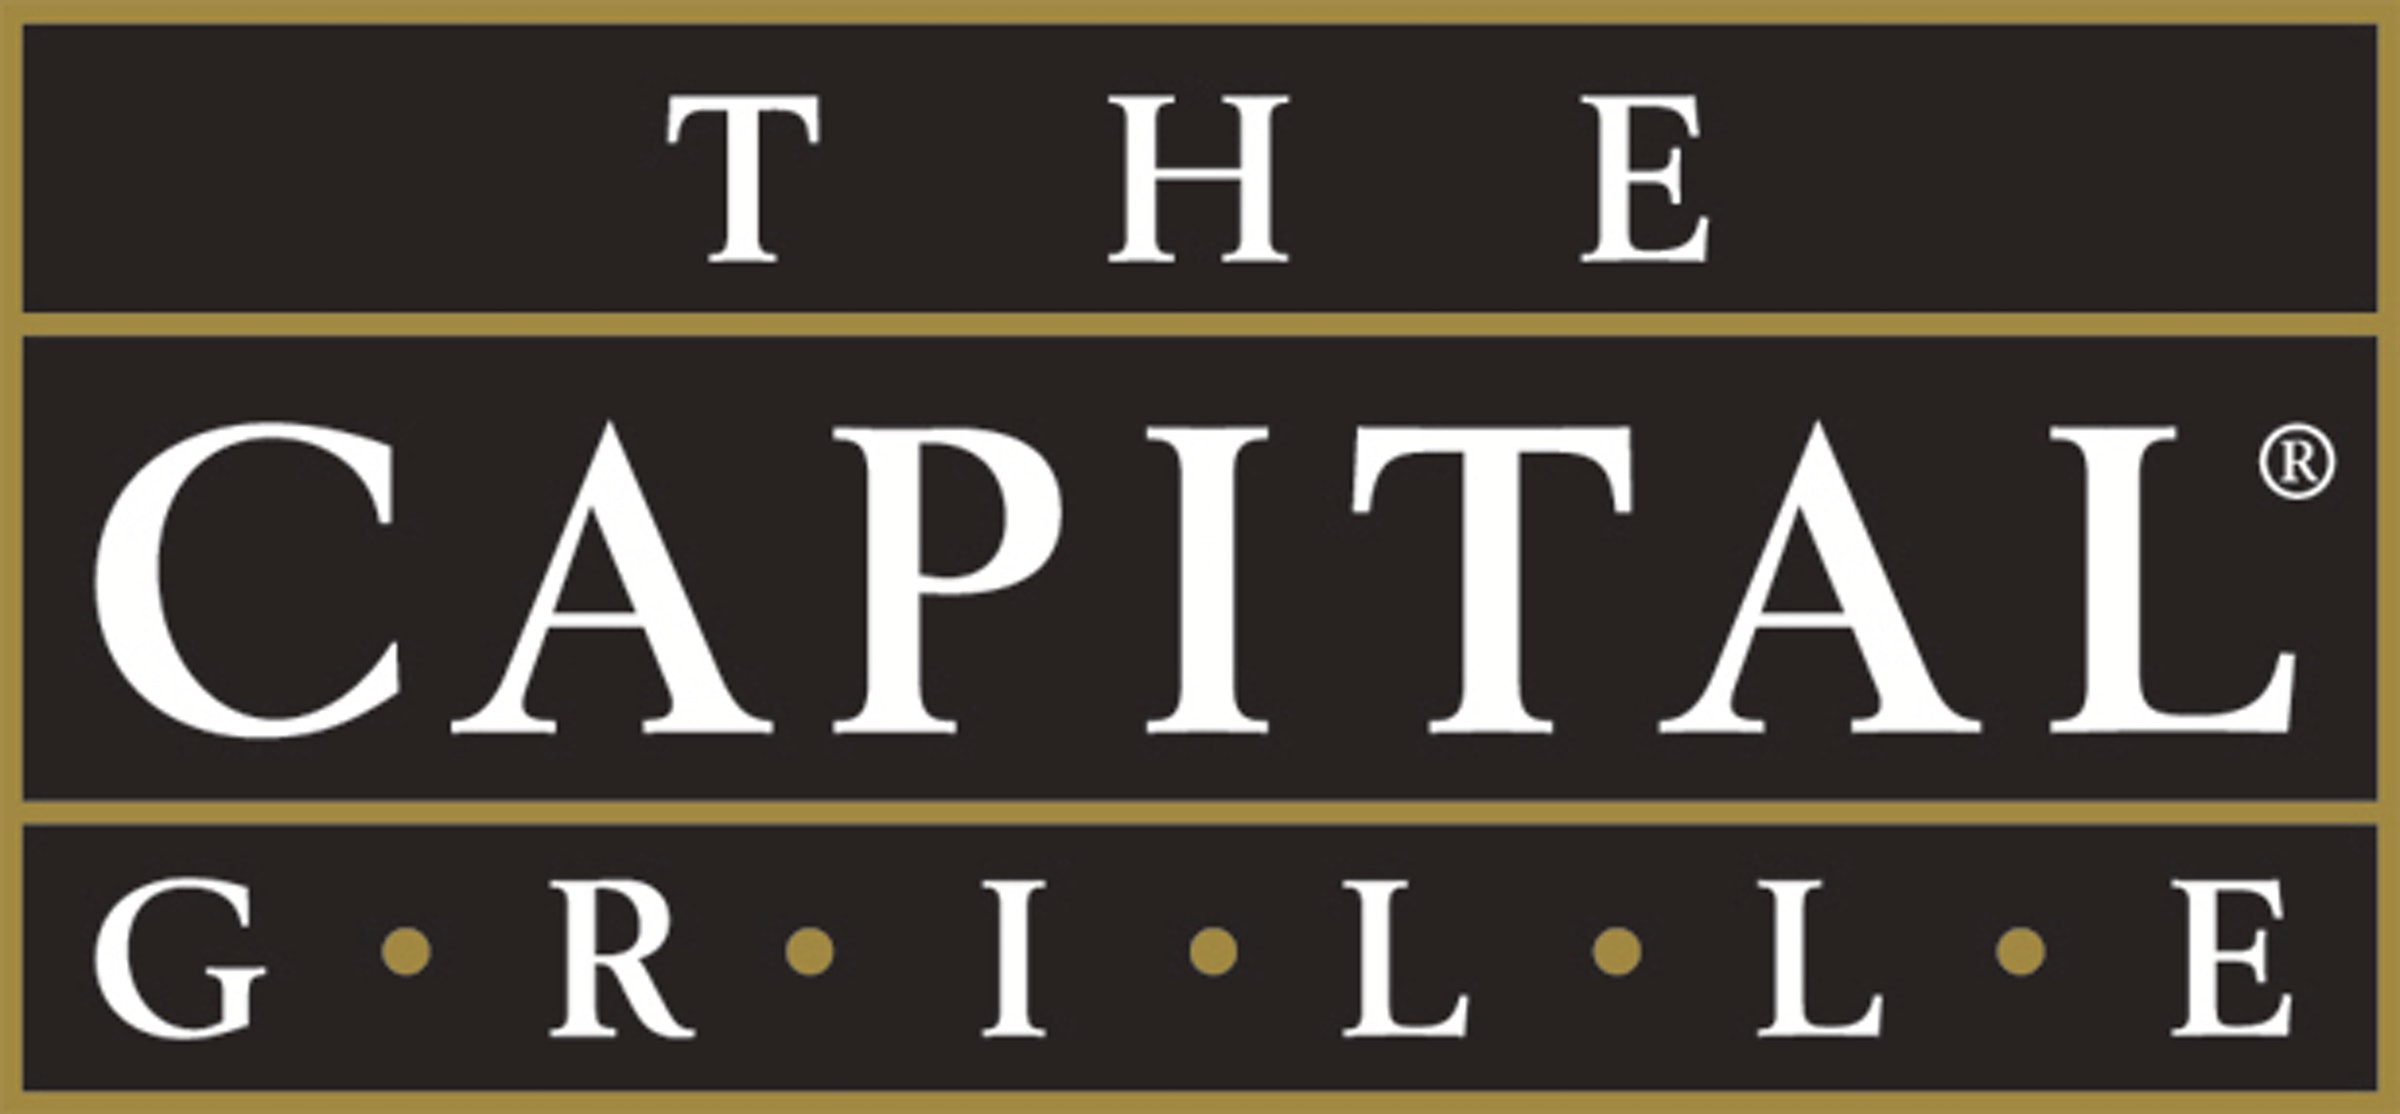 The Capital Grille in Beyond Dallas